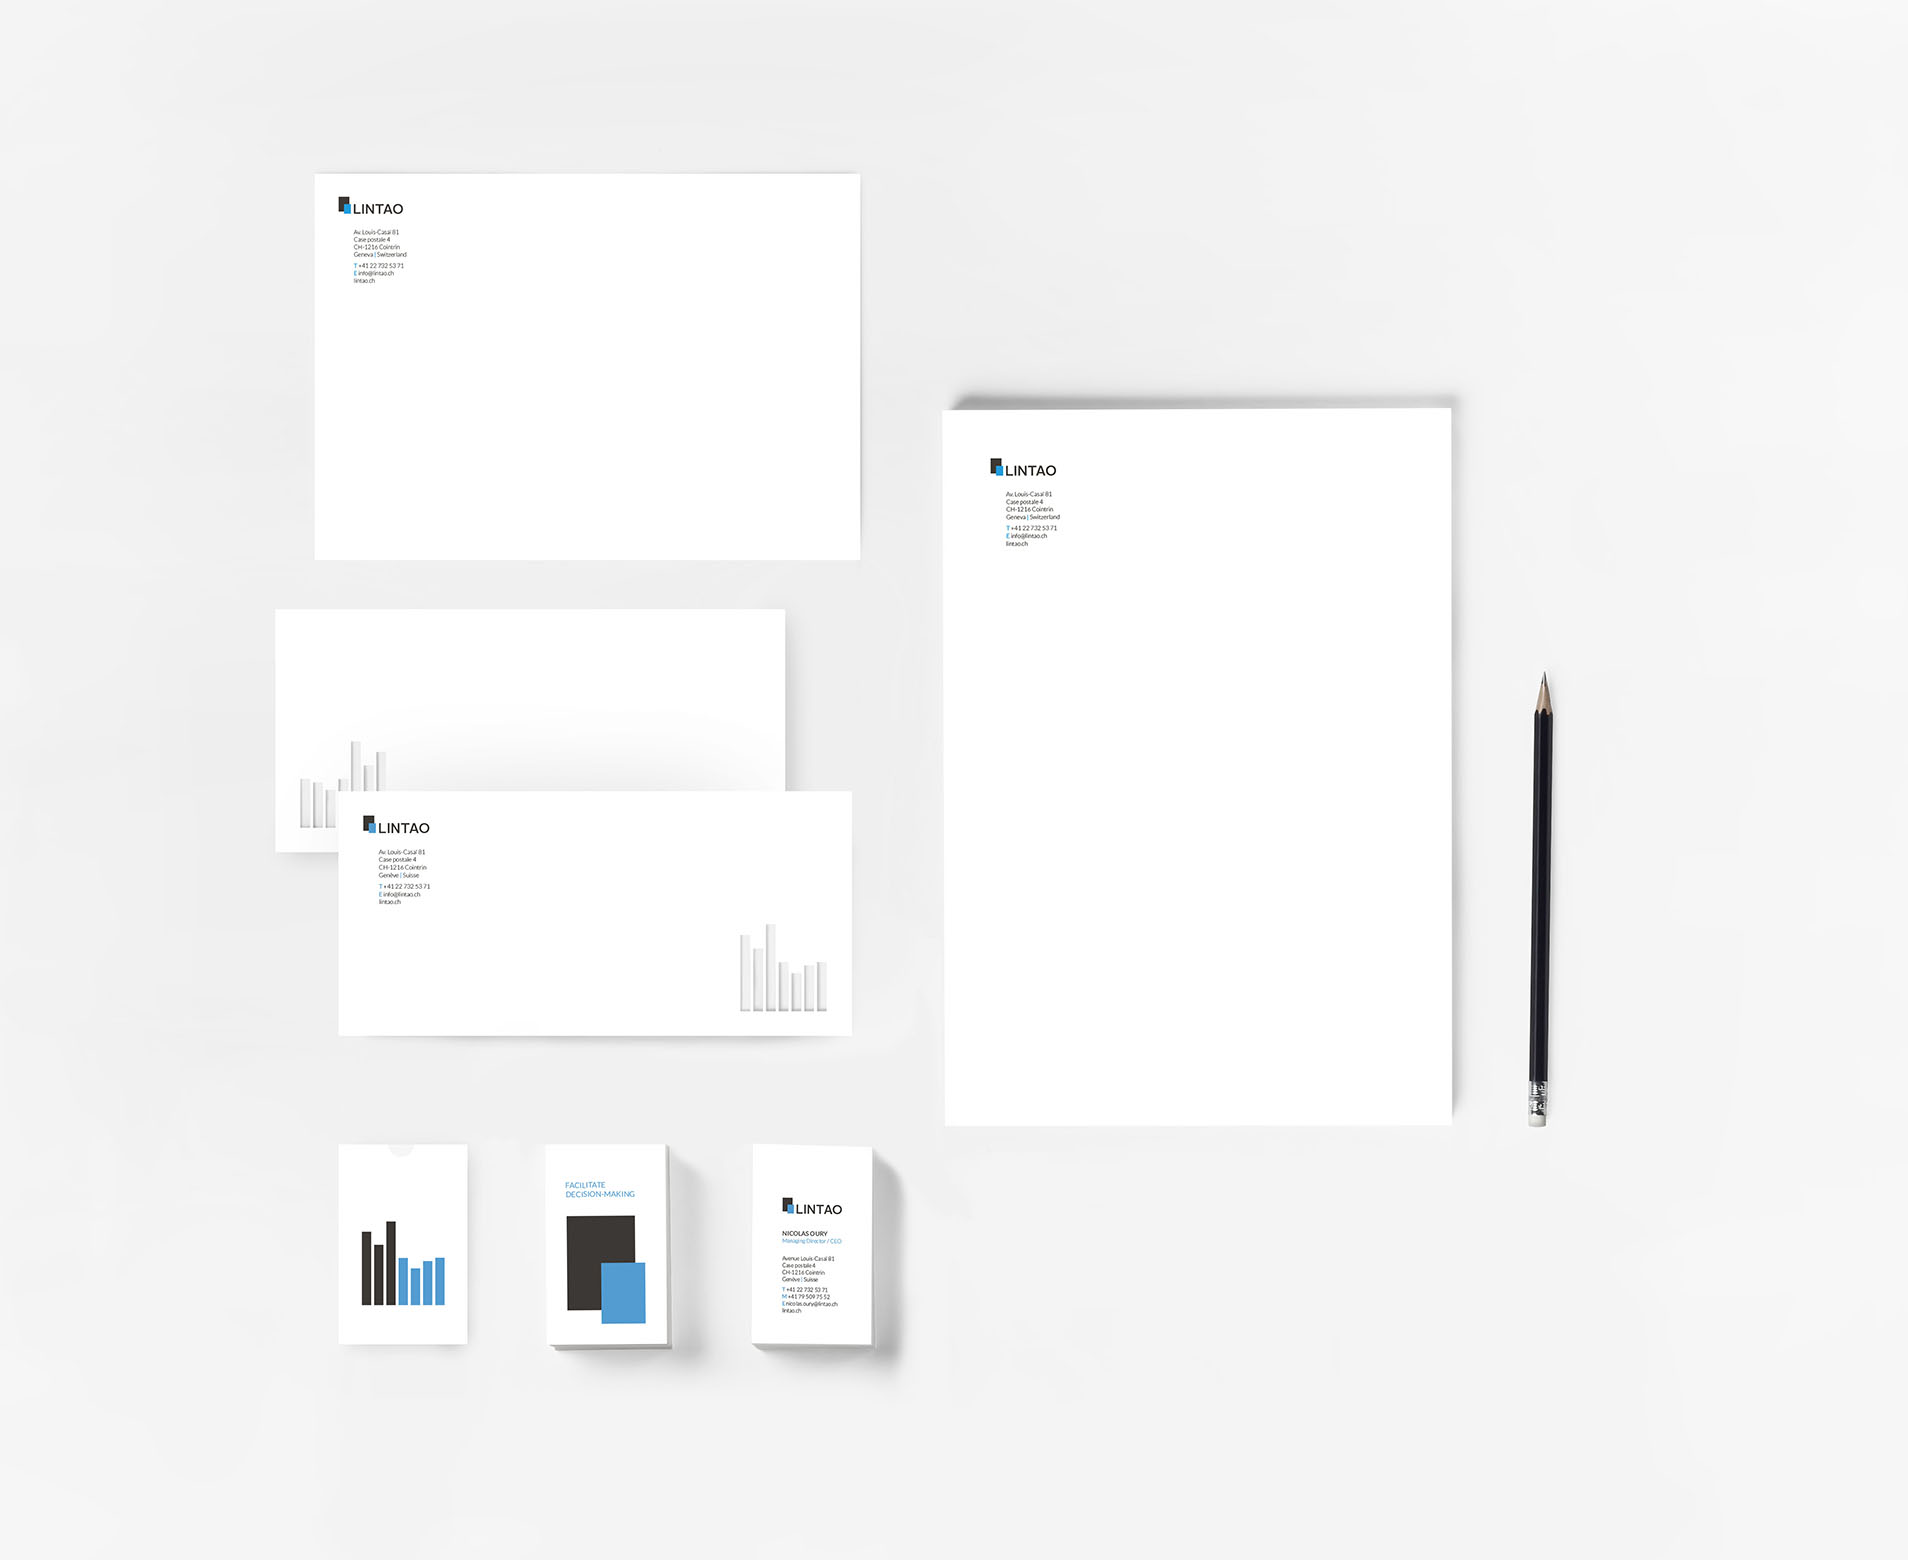 Display of the stationery elements corresponding to the new branding